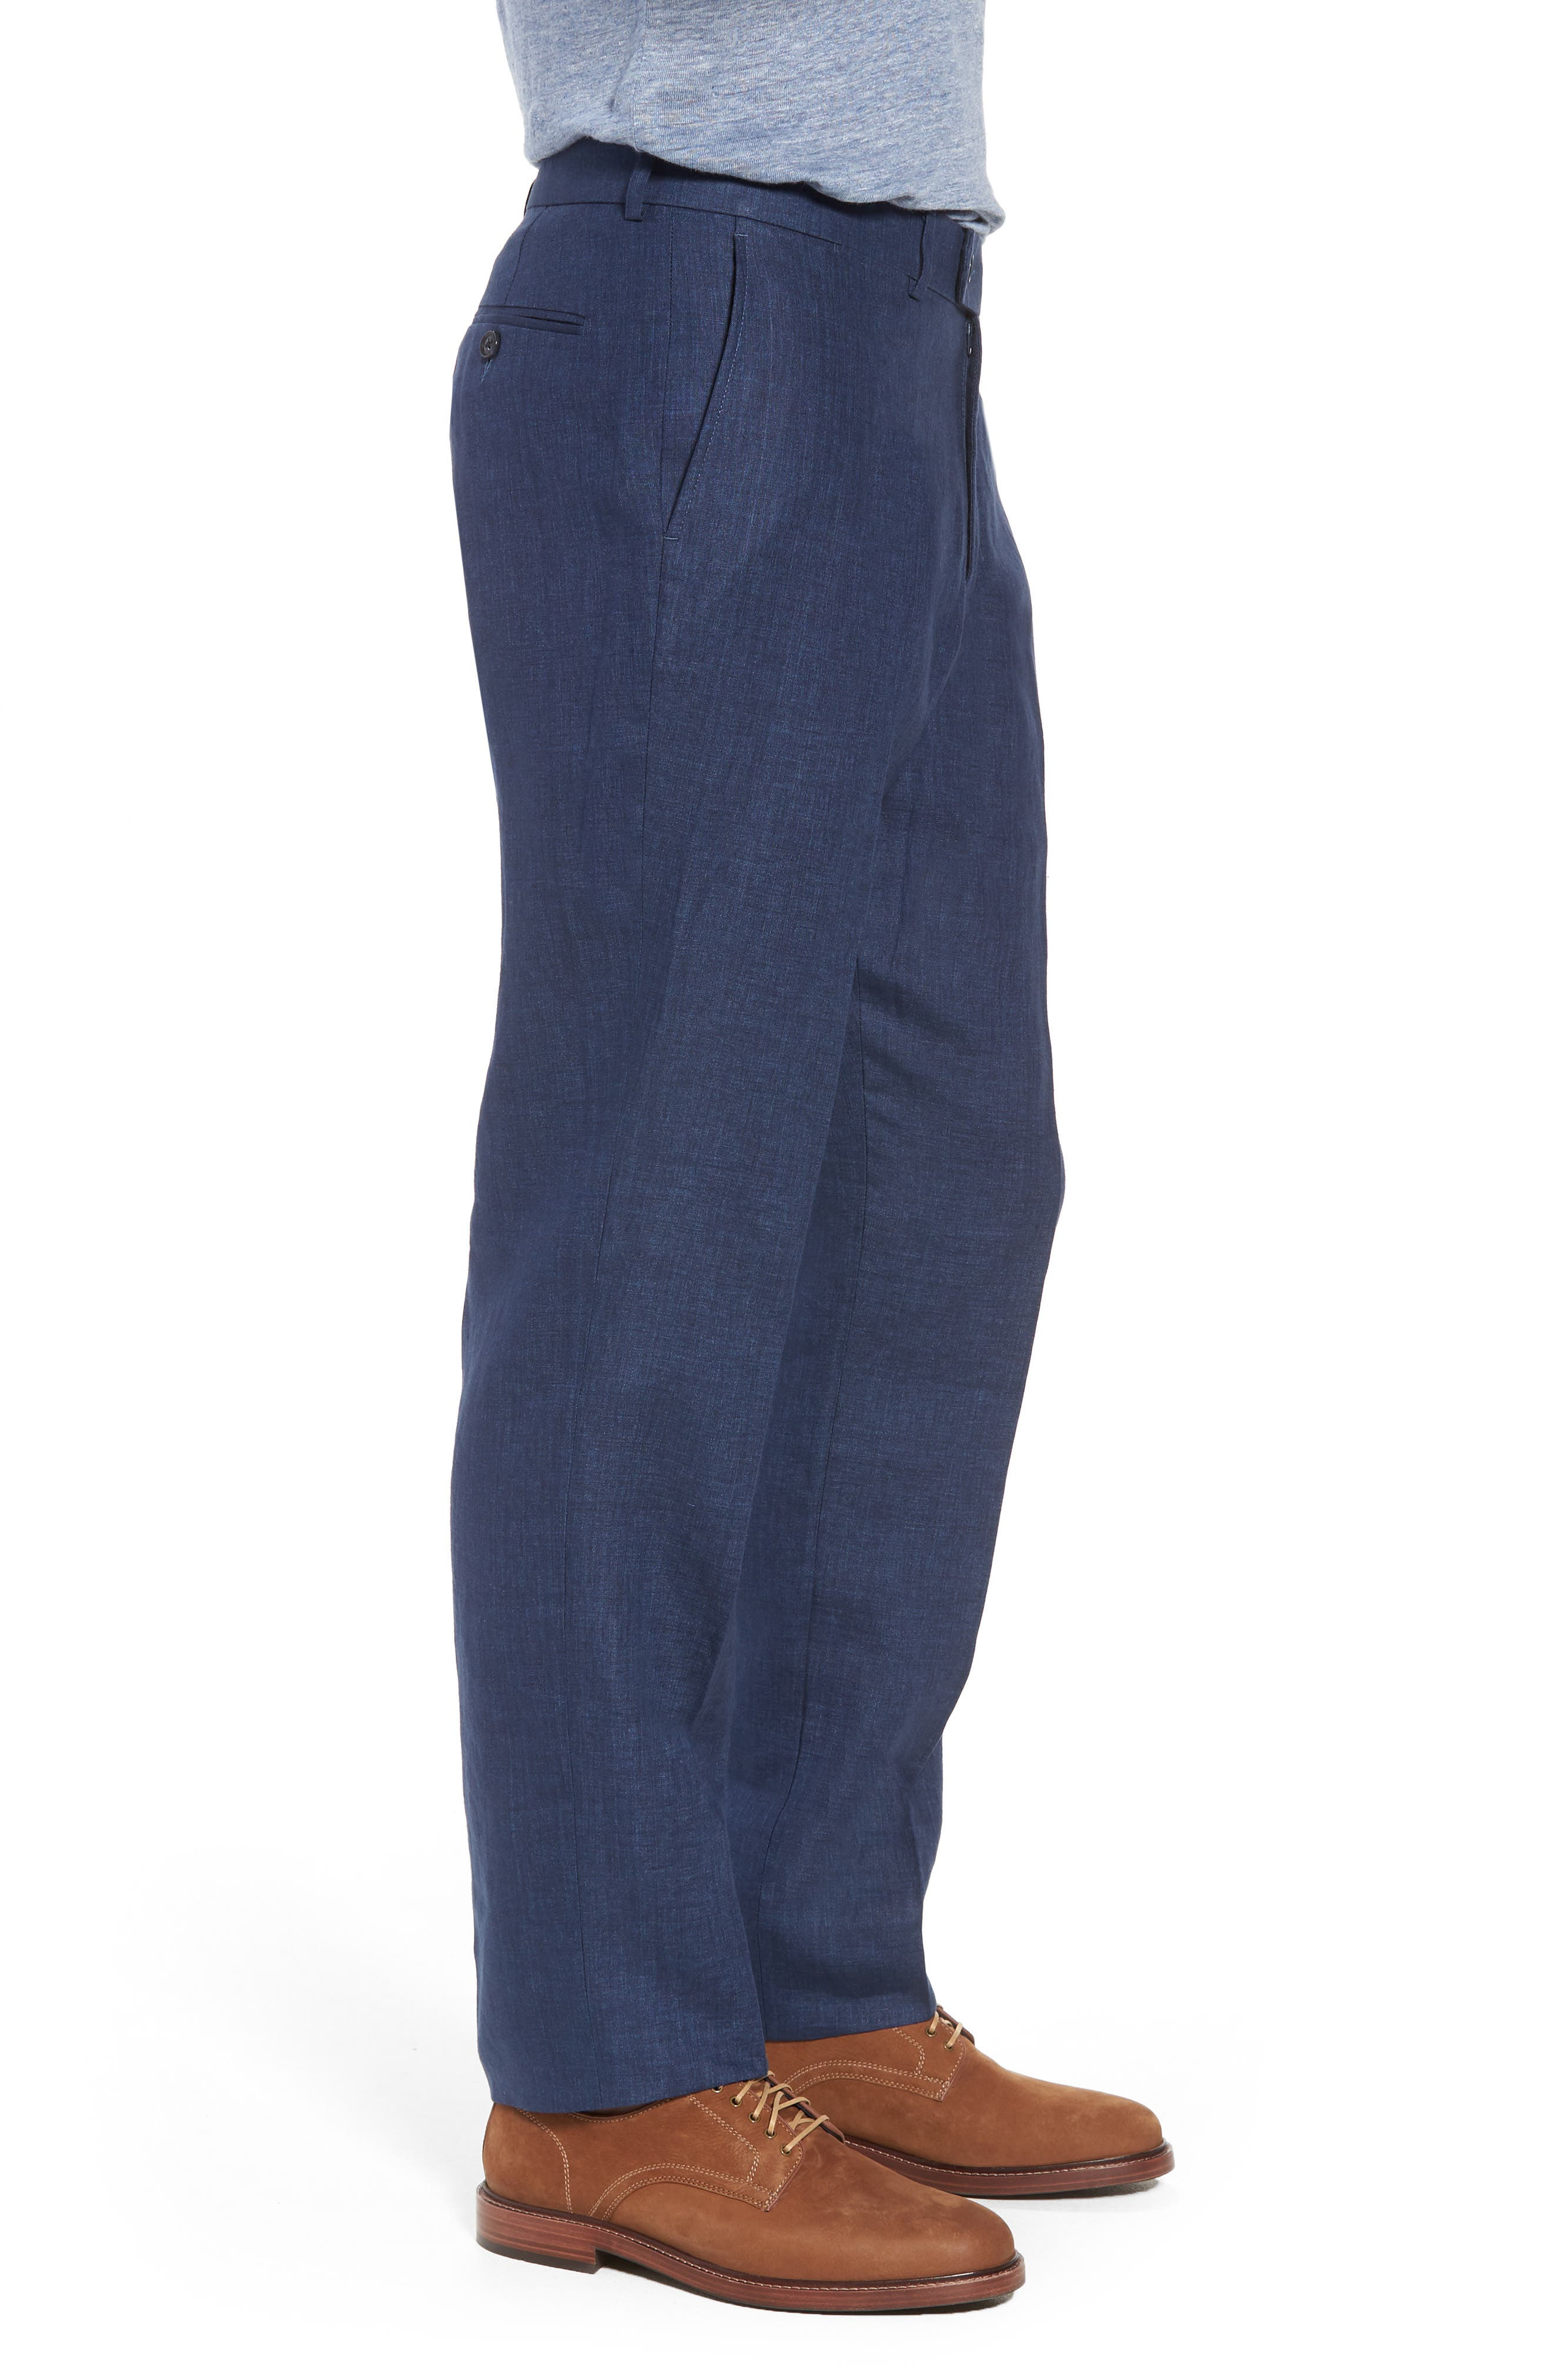 Andrew AIM Flat Front Linen Trousers,                             Alternate thumbnail 3, color,                             NAVY